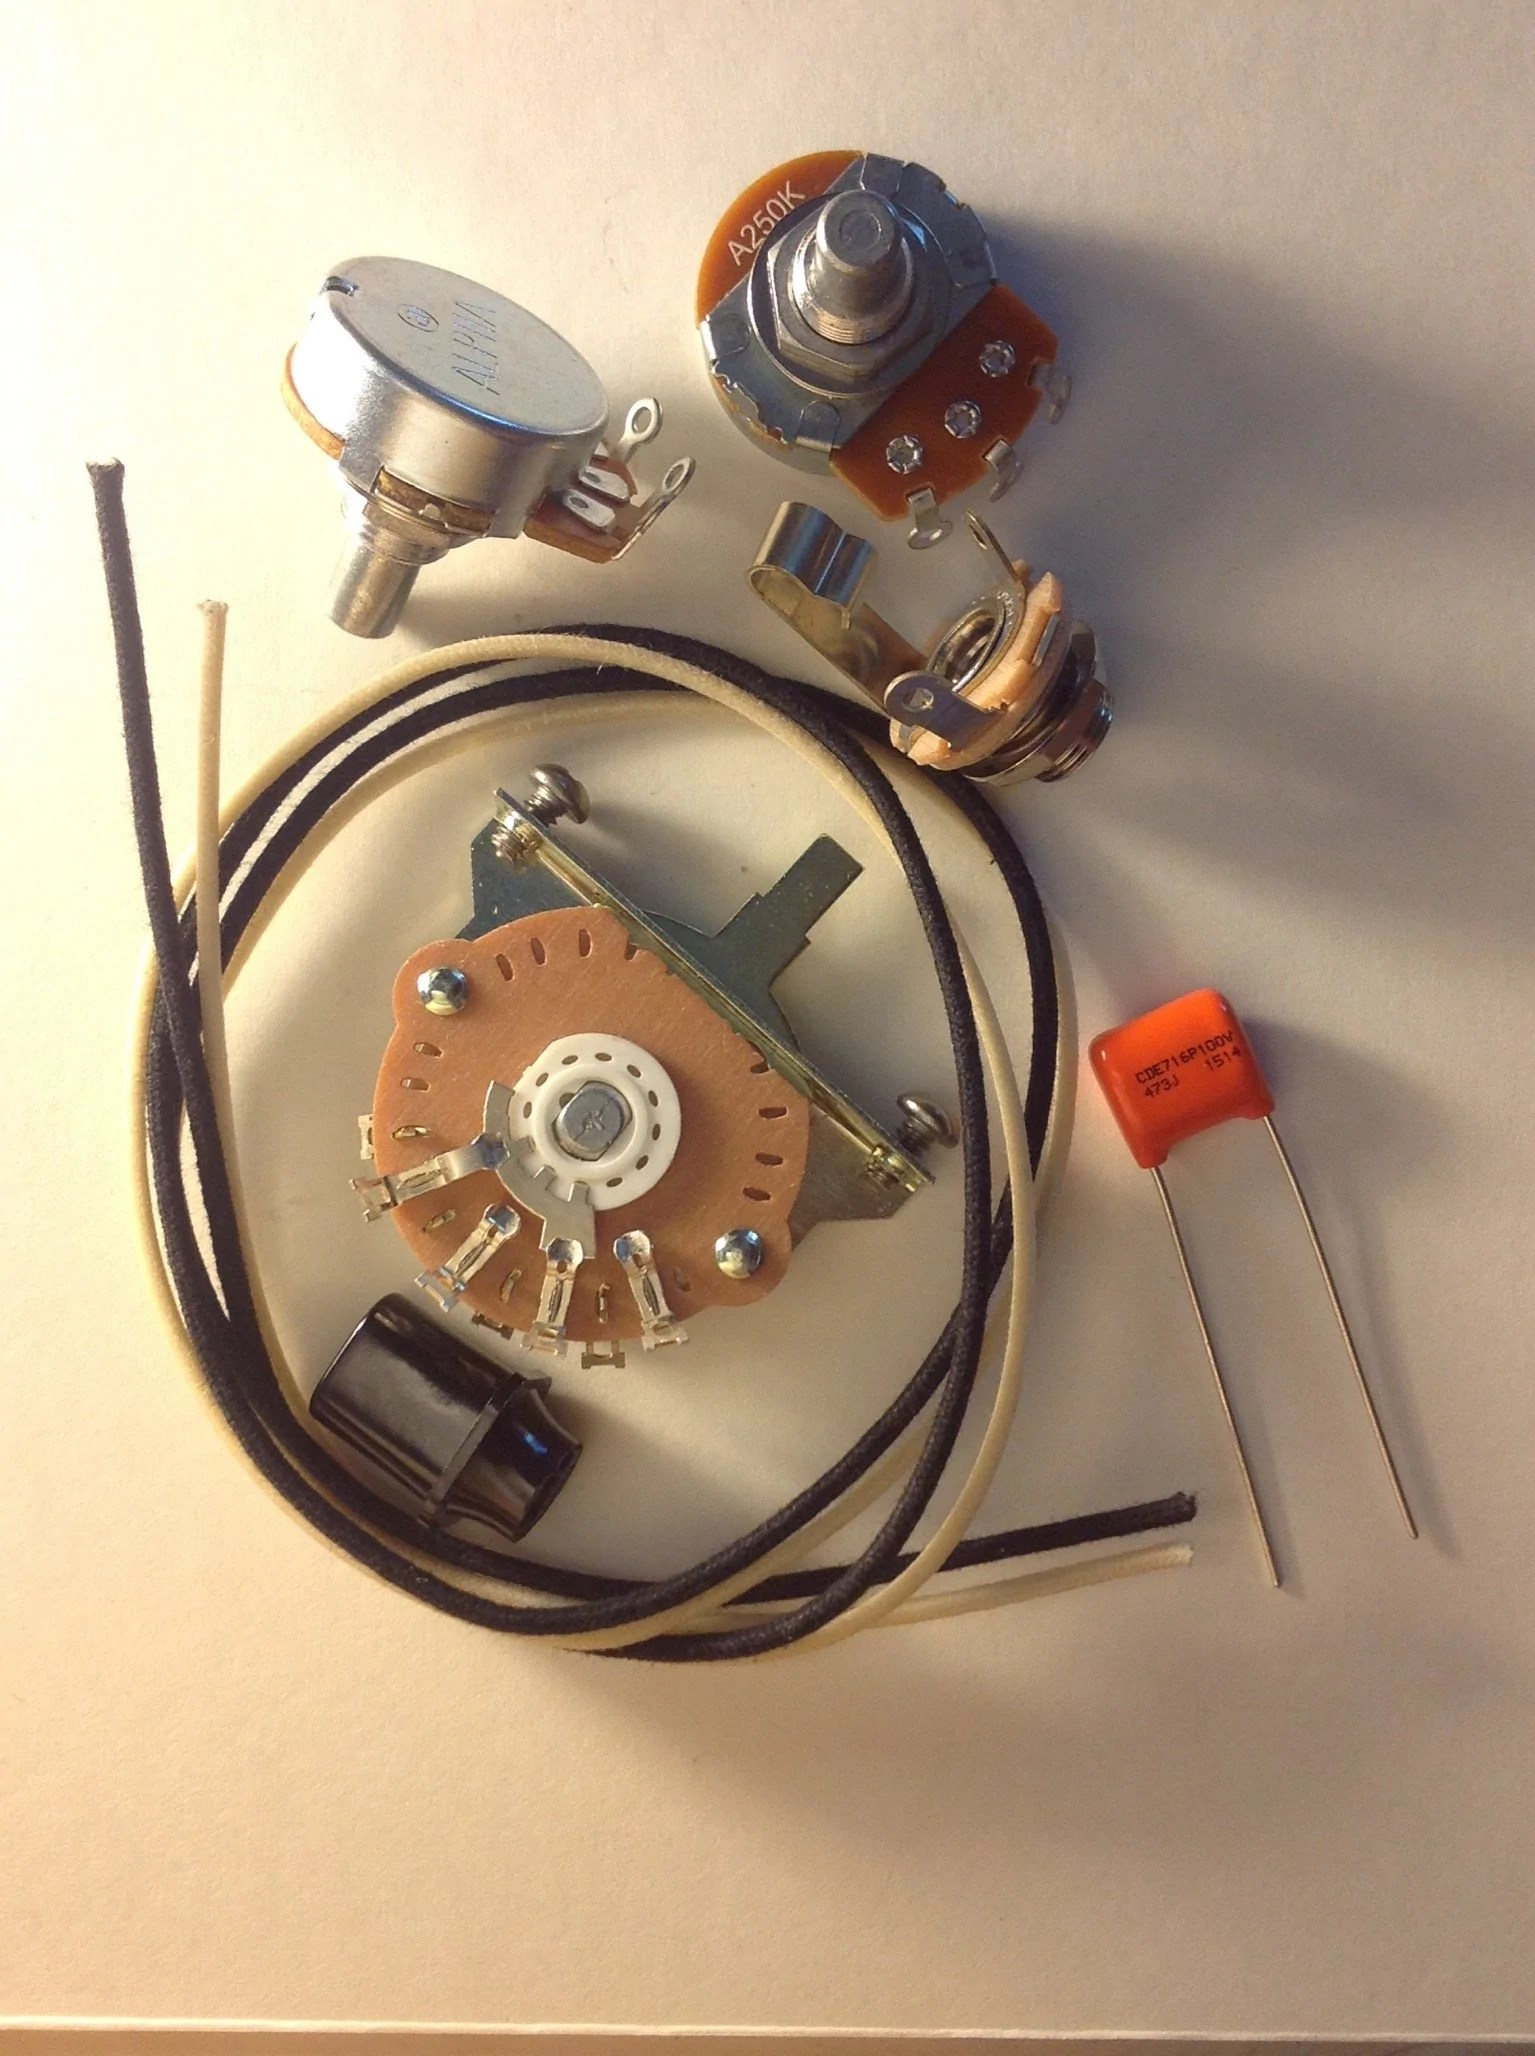 quality us spec wiring harness upgrade kit for telecaster 047uf orange drop cap [ 1535 x 2056 Pixel ]